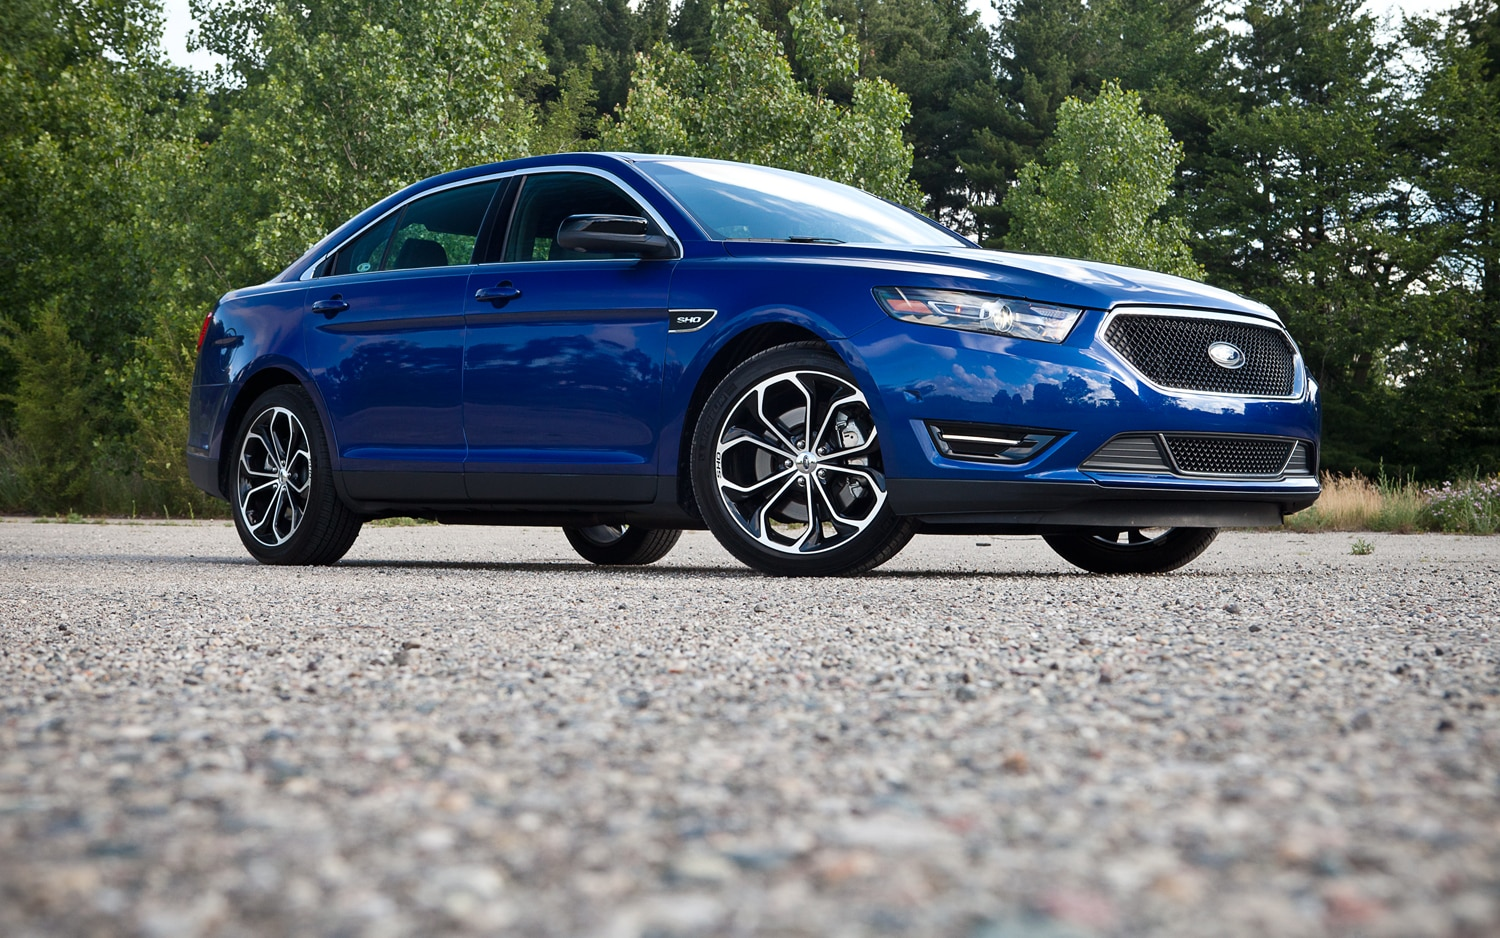 2013 Ford Taurus SHO Front Right Side View2